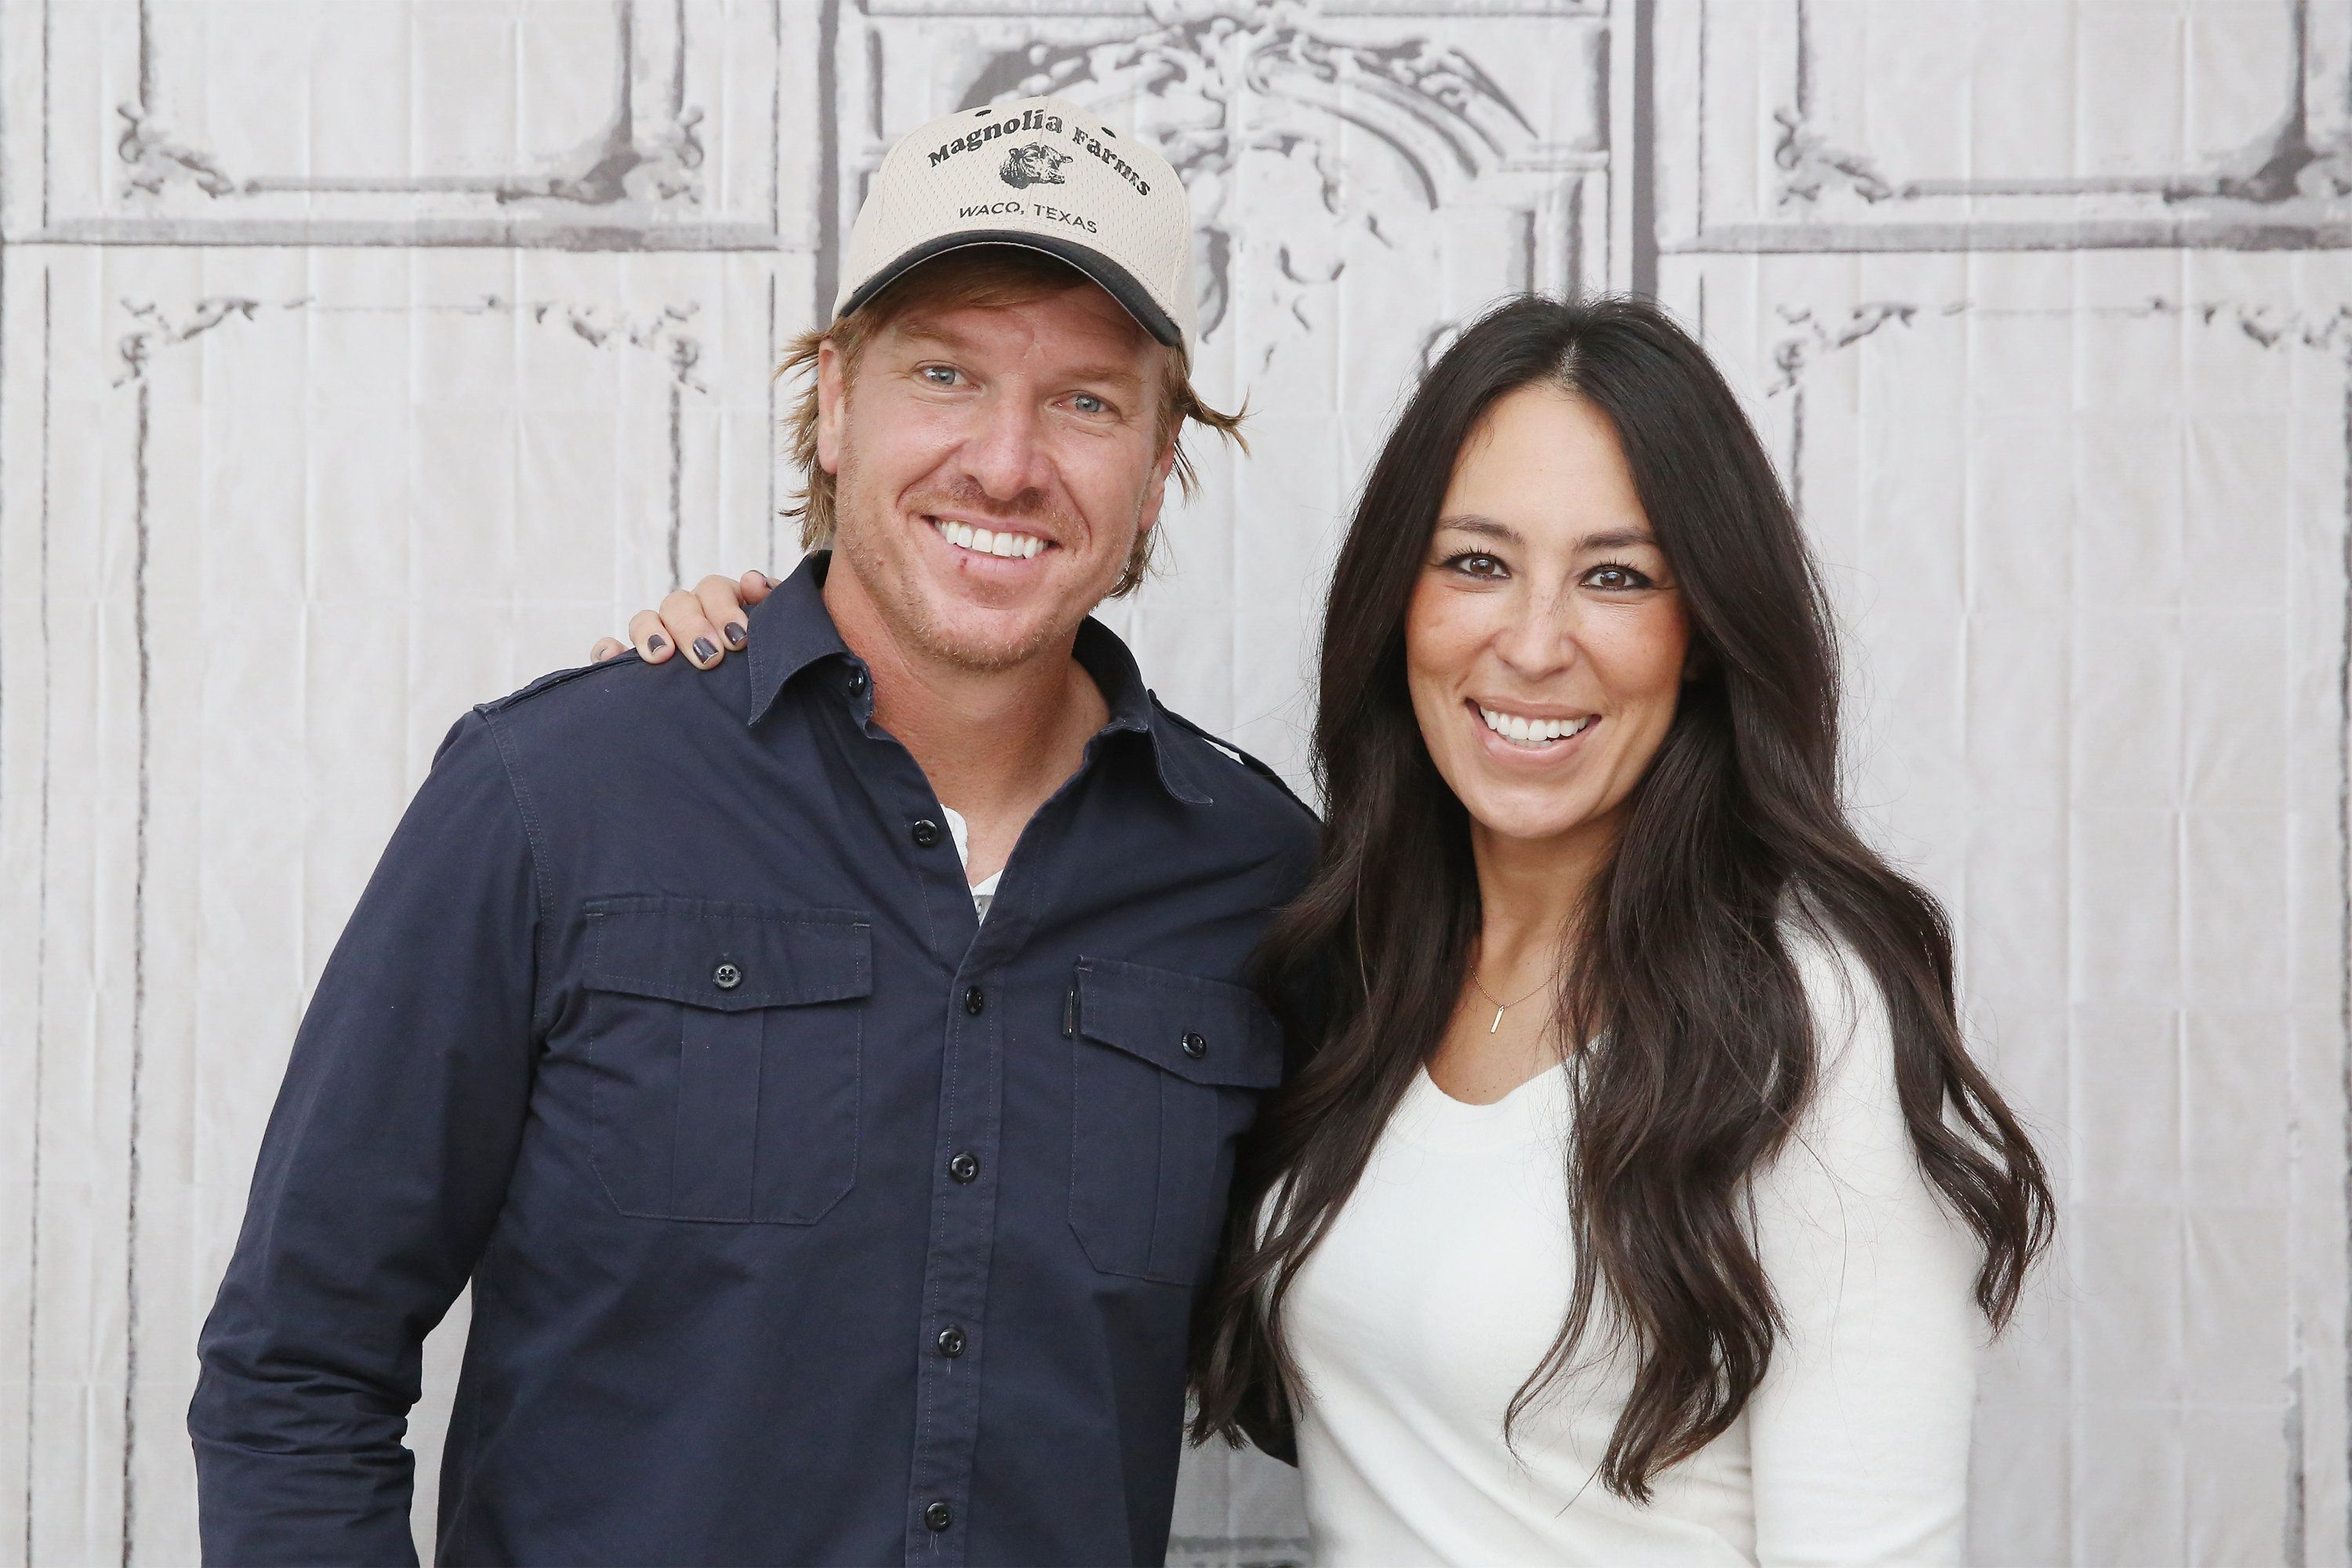 Chip Gaines (left) didn't address the December controversy directly, but the implication seemed clear.